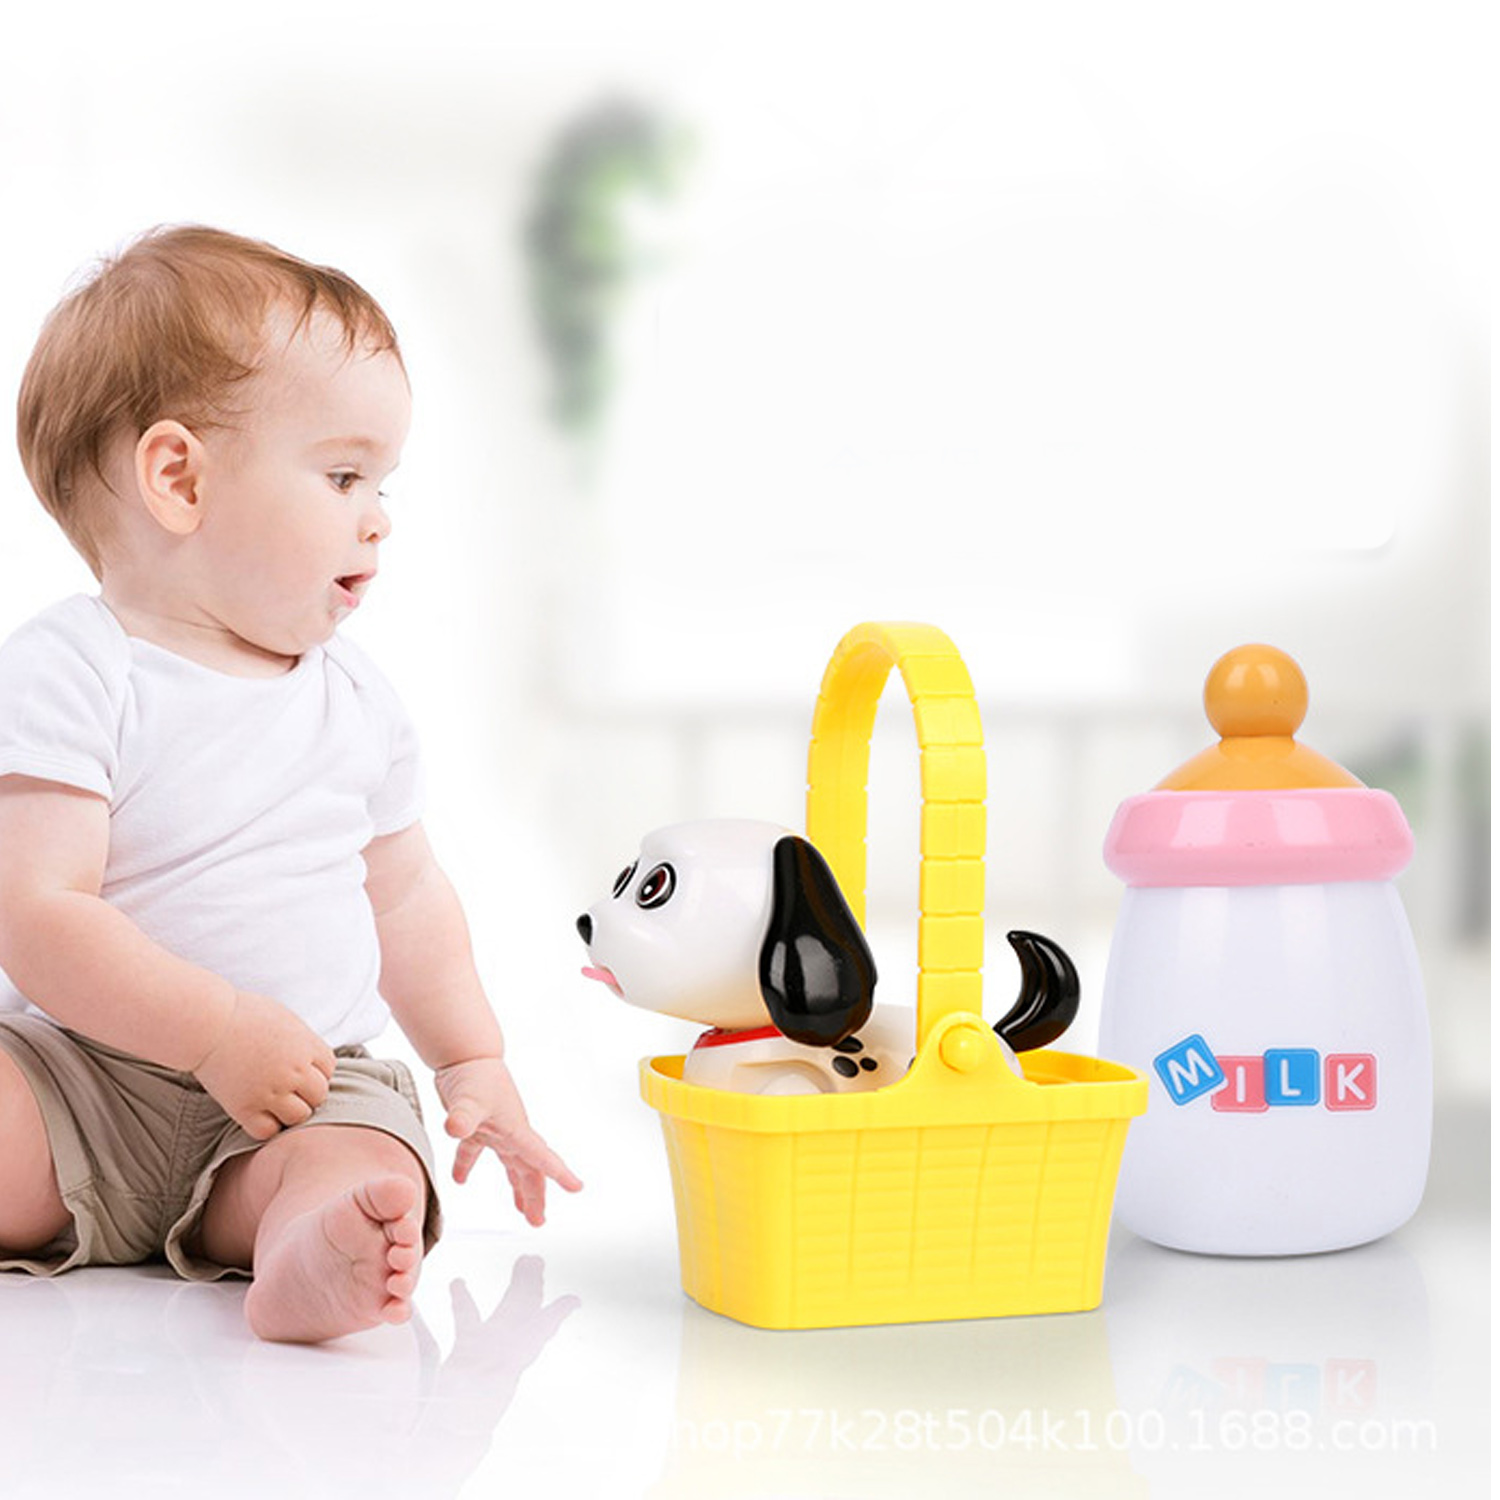 Funny Robot Dog Toys Electronic Pet Dog Induction Sucking Tongue Stick Out Drink Milk Bottle Kids Intellectual Development Gifts